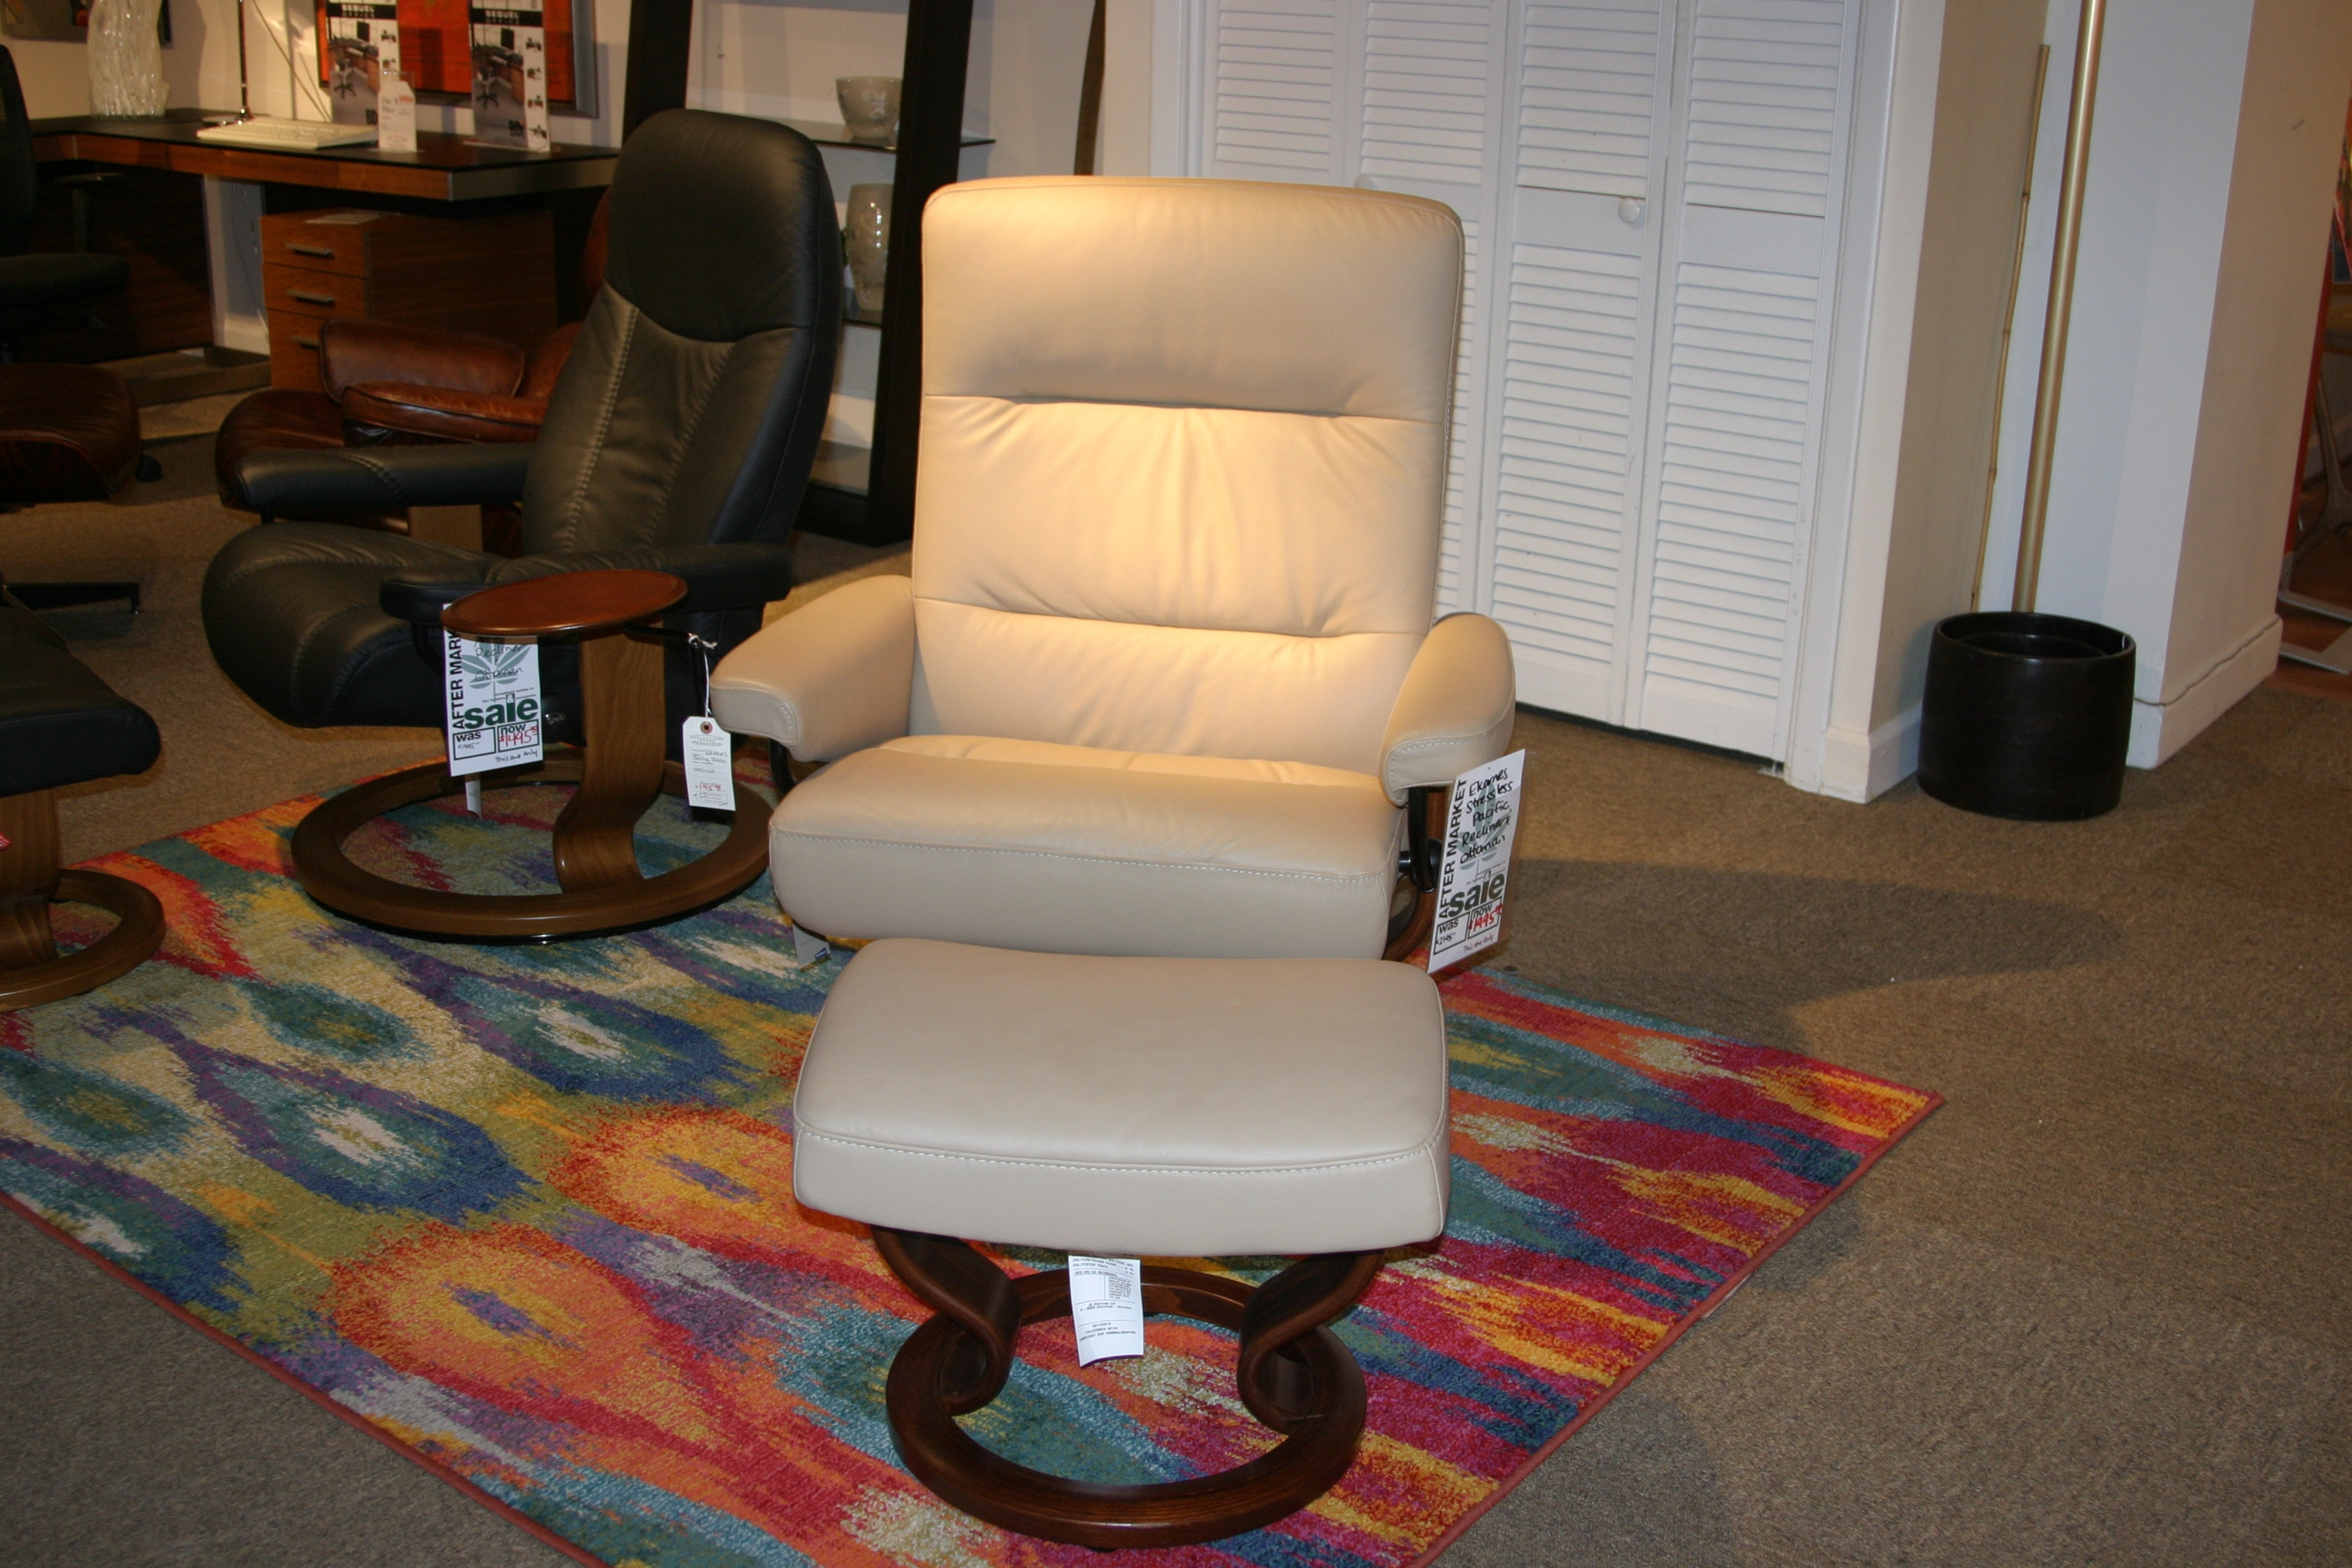 Reflections Furniture Outlet Ekornes Stressless Pacific Recliner and Ottoman Stressless Recliner & Reflections Furniture Outlet Home Office Ekornes Stressless ... islam-shia.org